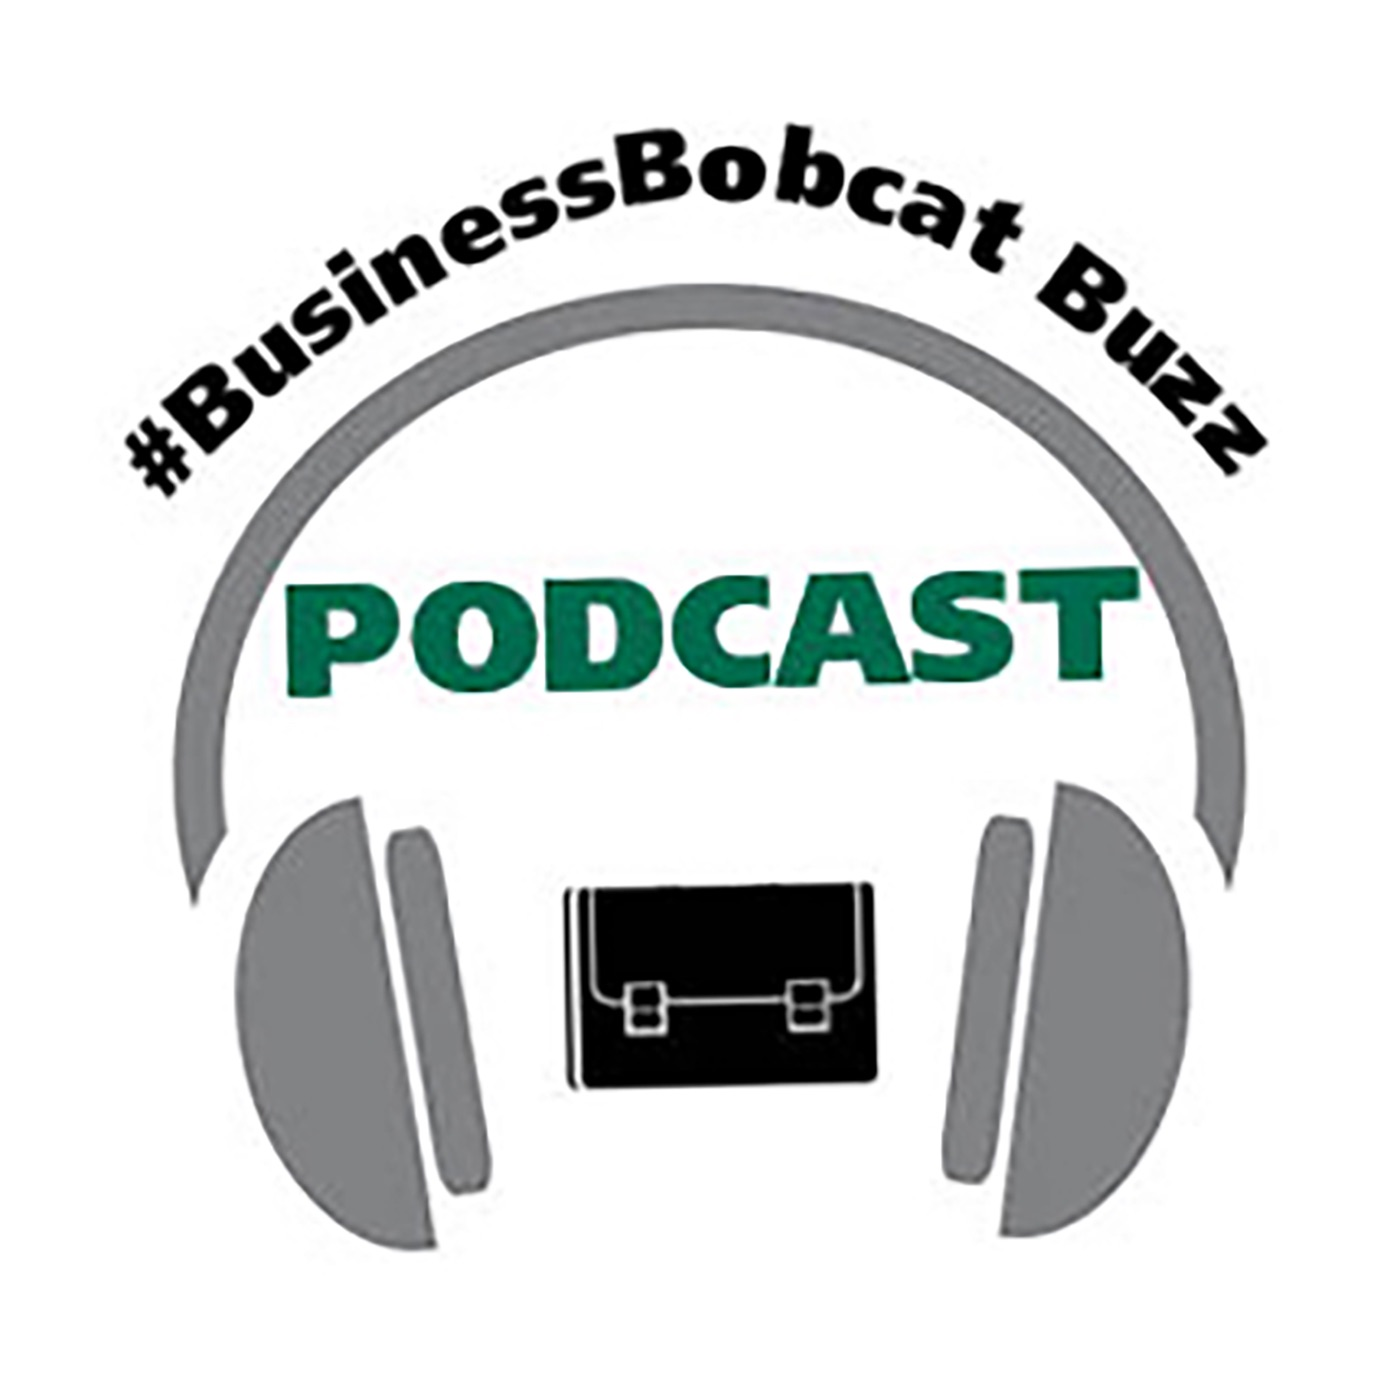 #BusinessBobcat Buzz Podcast